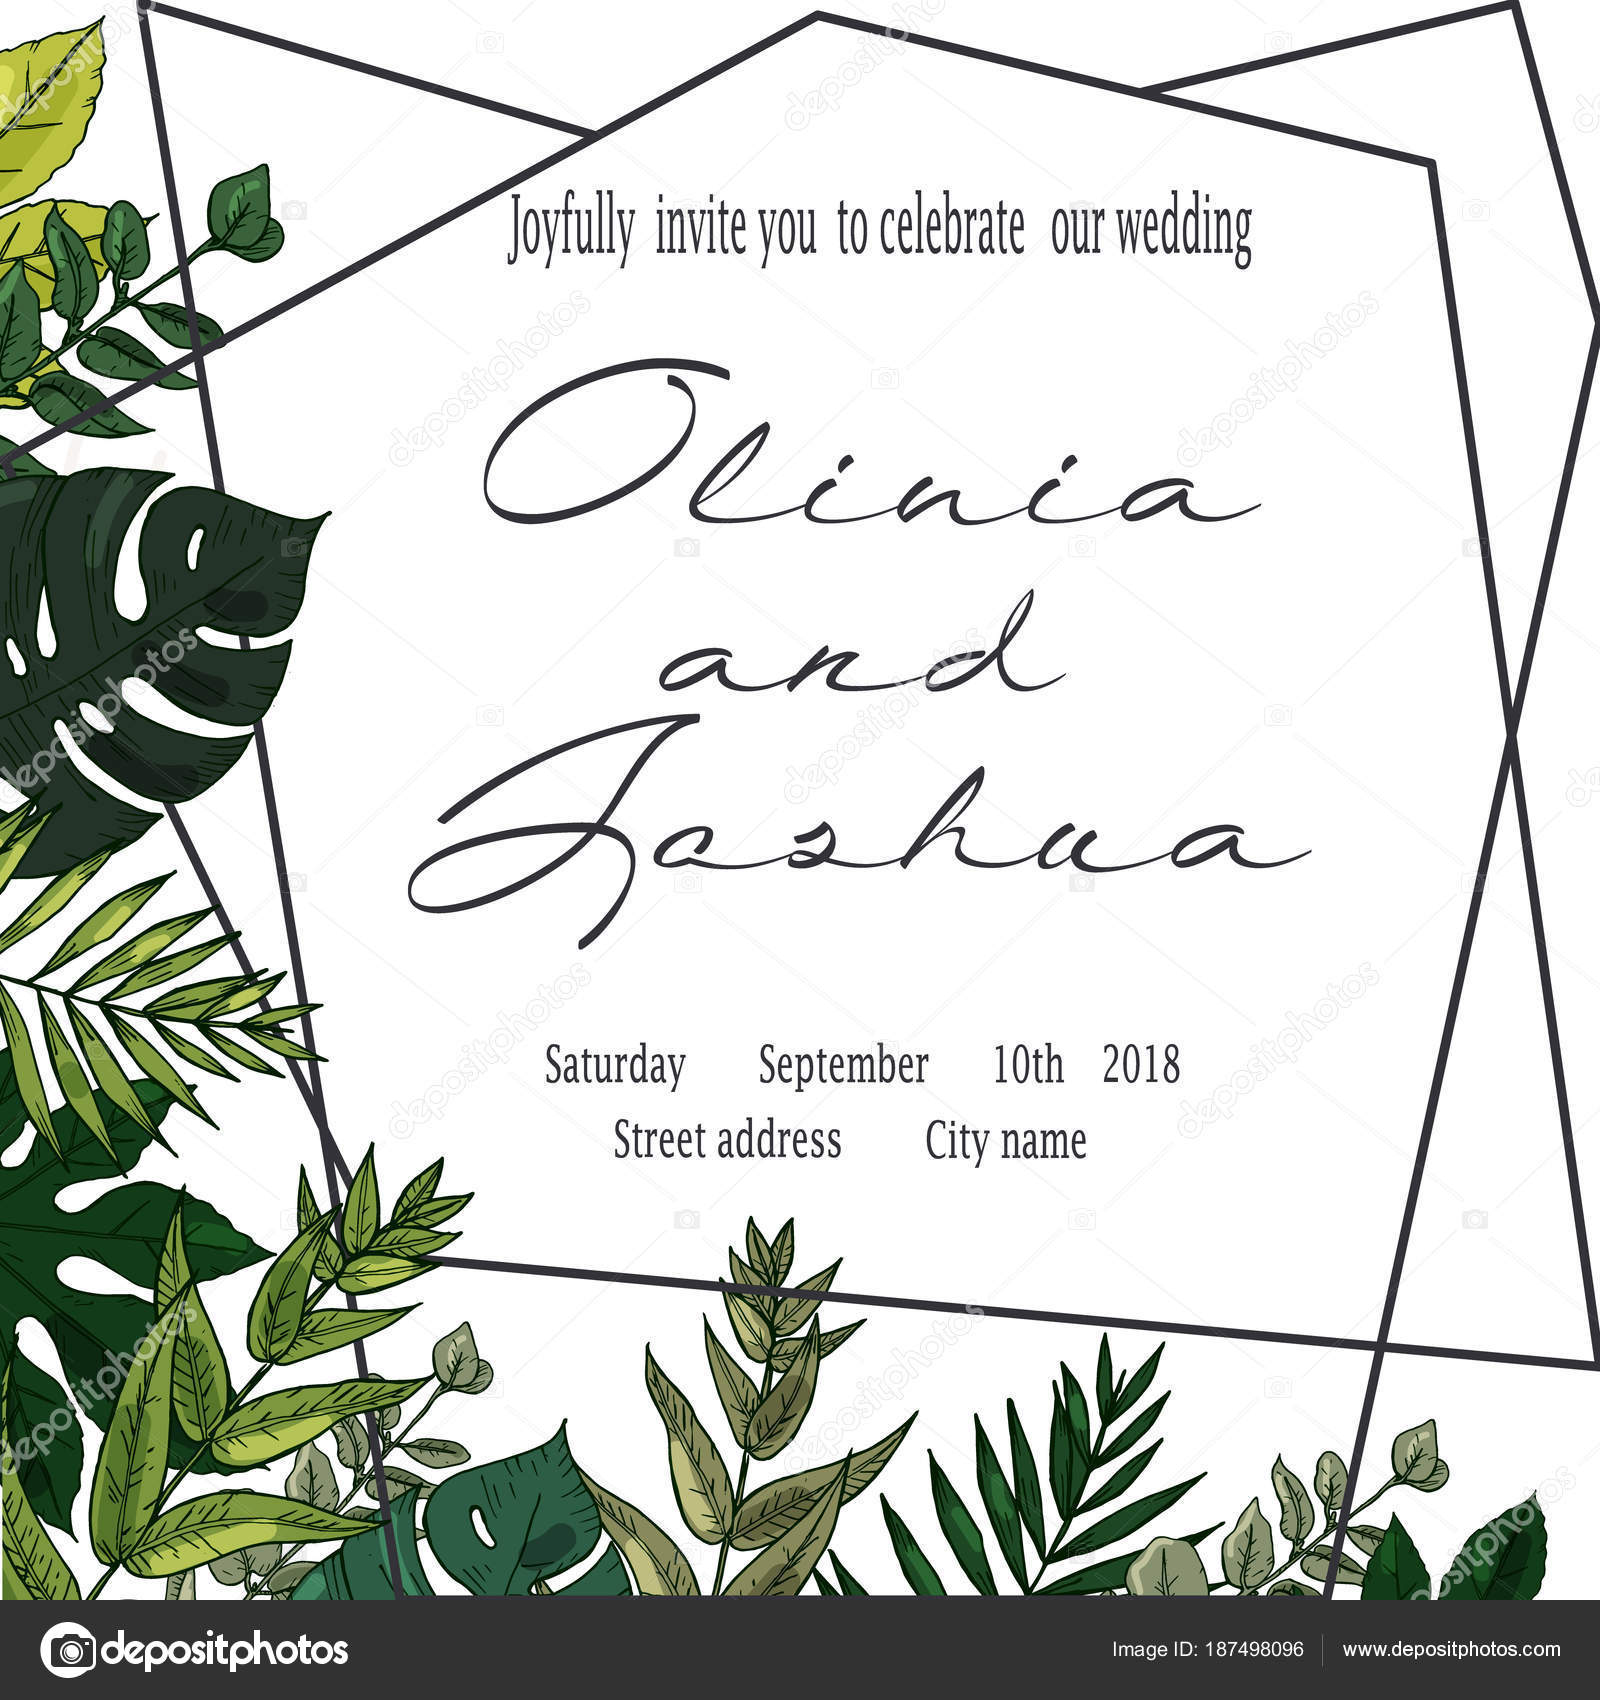 Vector wedding invite invitation save the date floral card design vector wedding invite invitation save the date floral card design green fern forest leaves stopboris Image collections